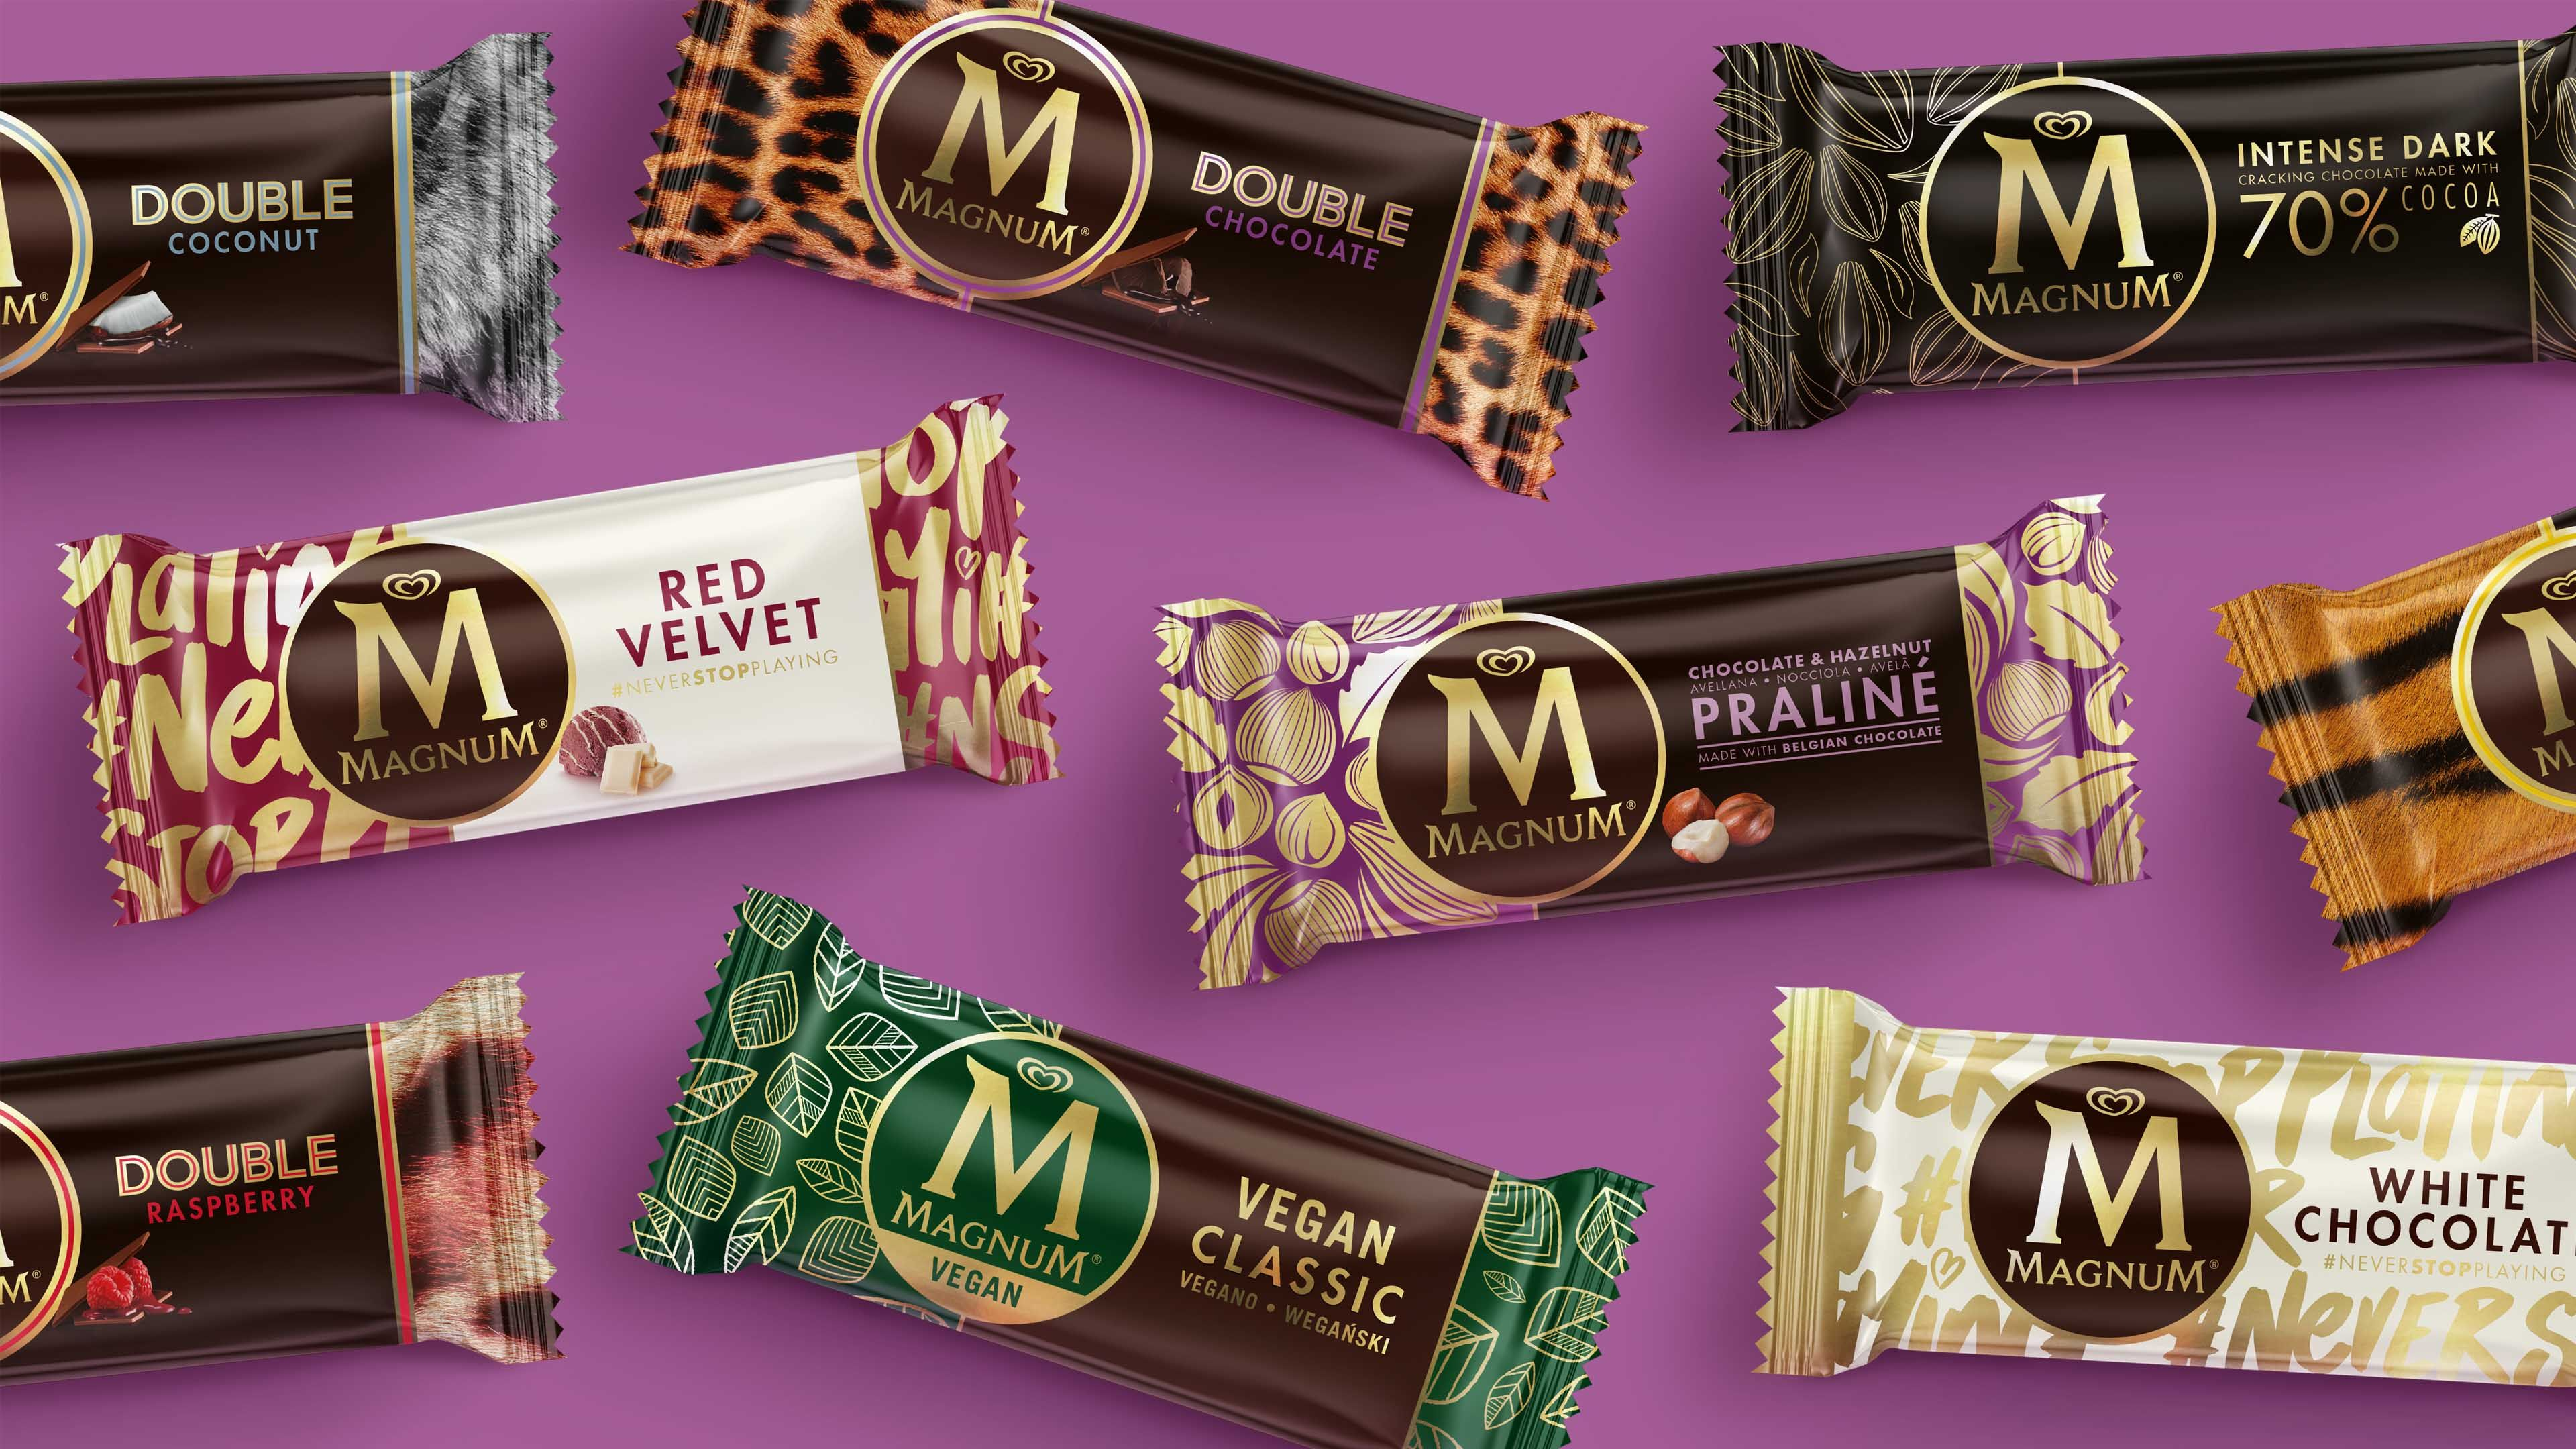 Magnum chocolate branding and packaging design by Sunhouse